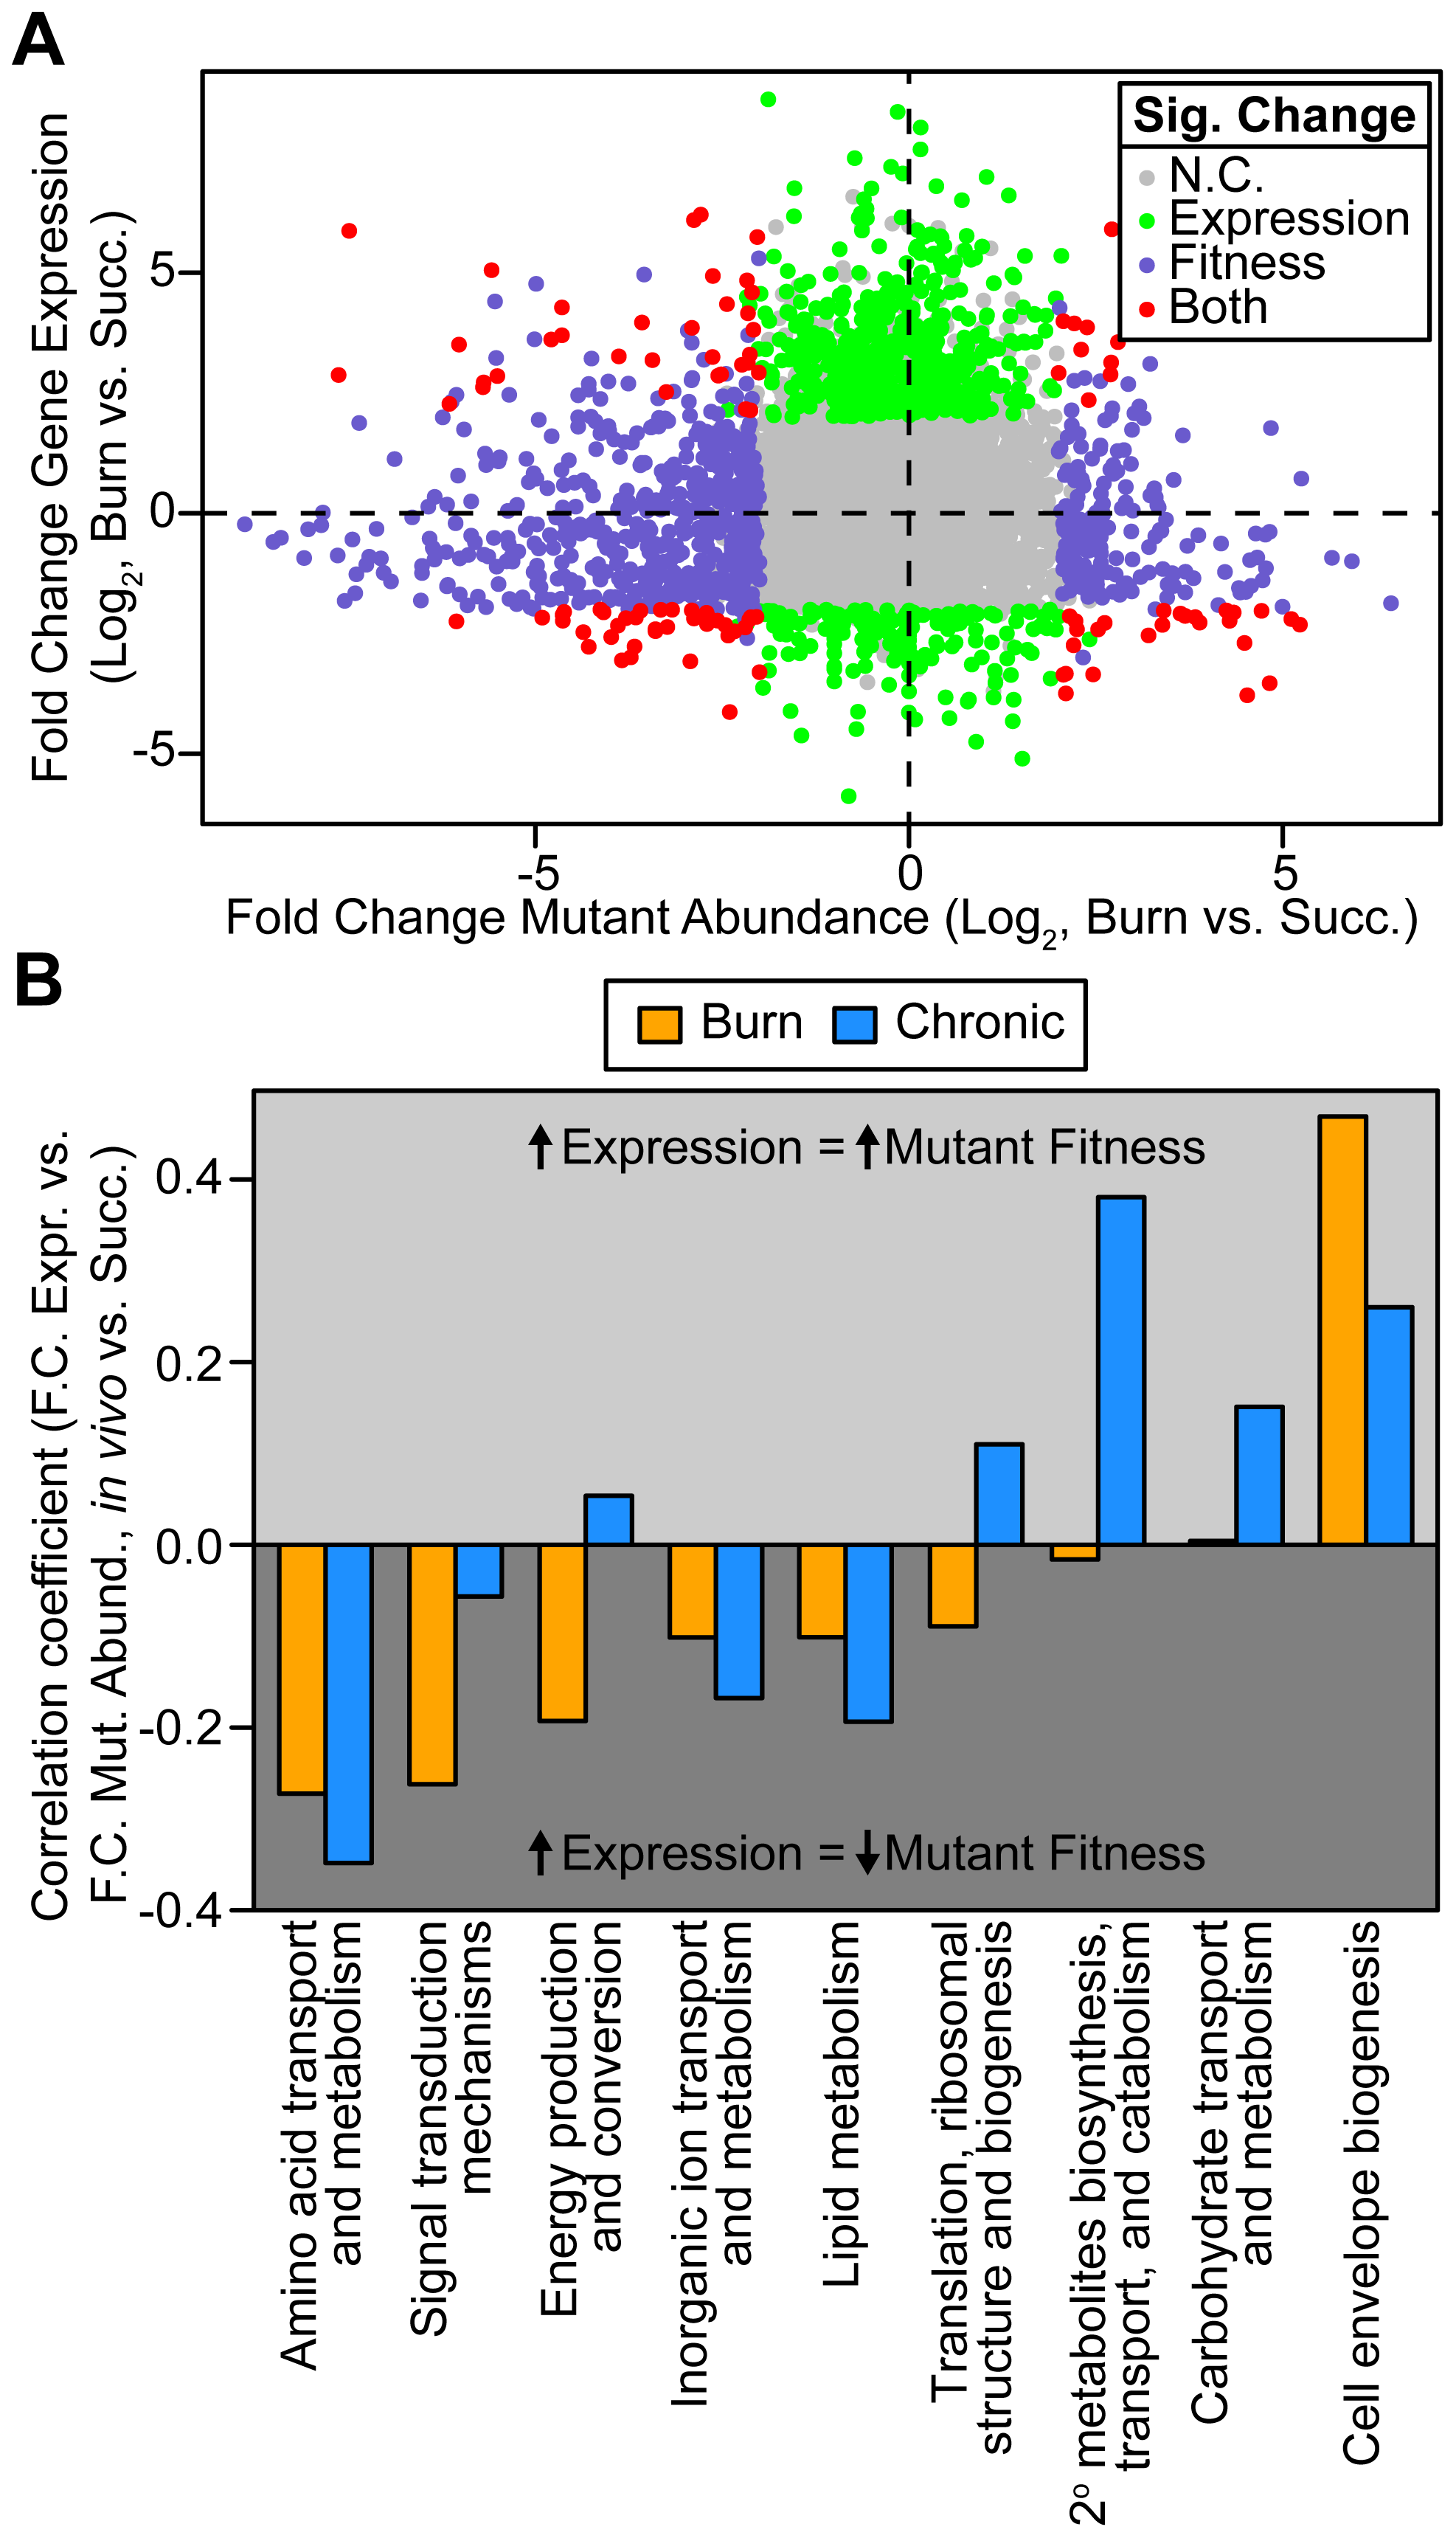 Genome-wide <i>P. aeruginosa</i> gene expression and knockout fitness in wound infection are not correlated.